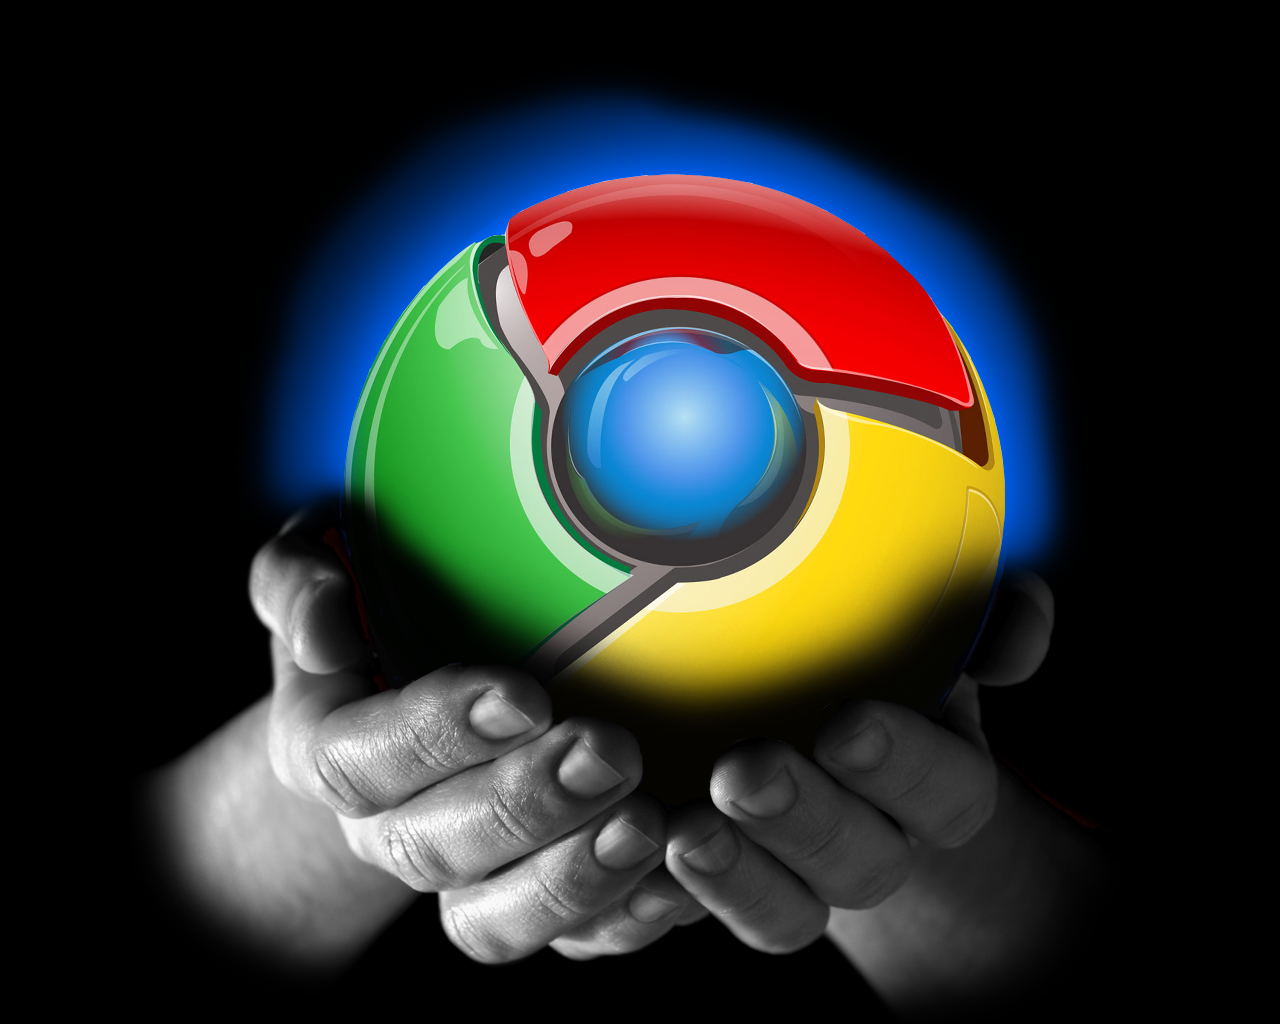 Браузер Google Chrome установили свыше 2 млрд пользователей